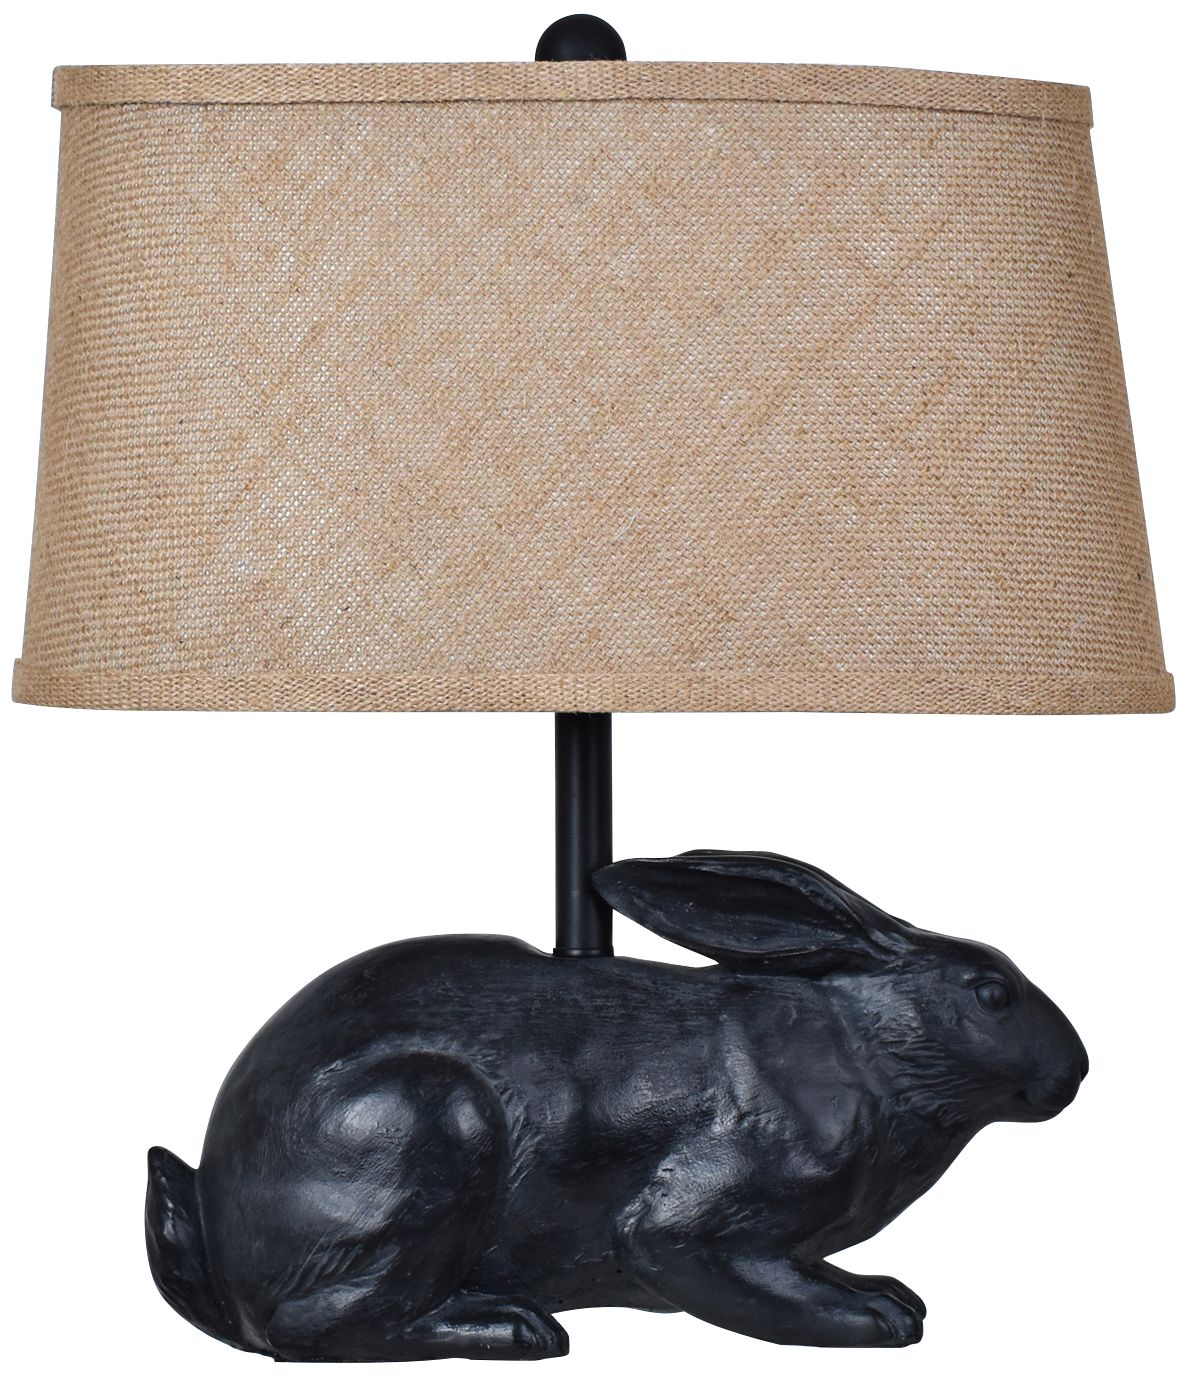 Crestview Collection Rabbit Black Animal Sculpture Table Lamp